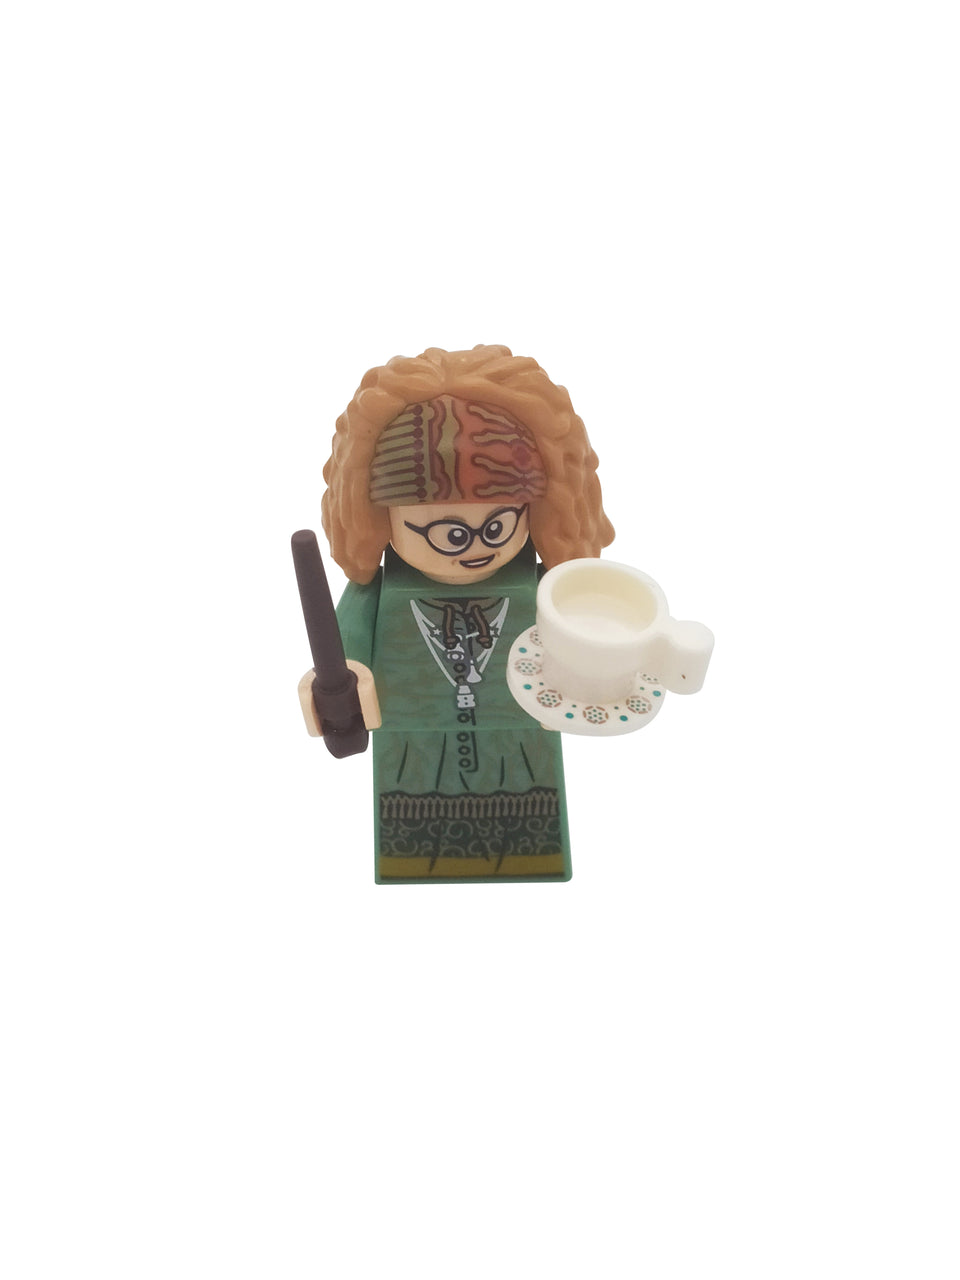 LEGO Harry Potter Series -  minifigure Professor Sybil Trelawney - 71022